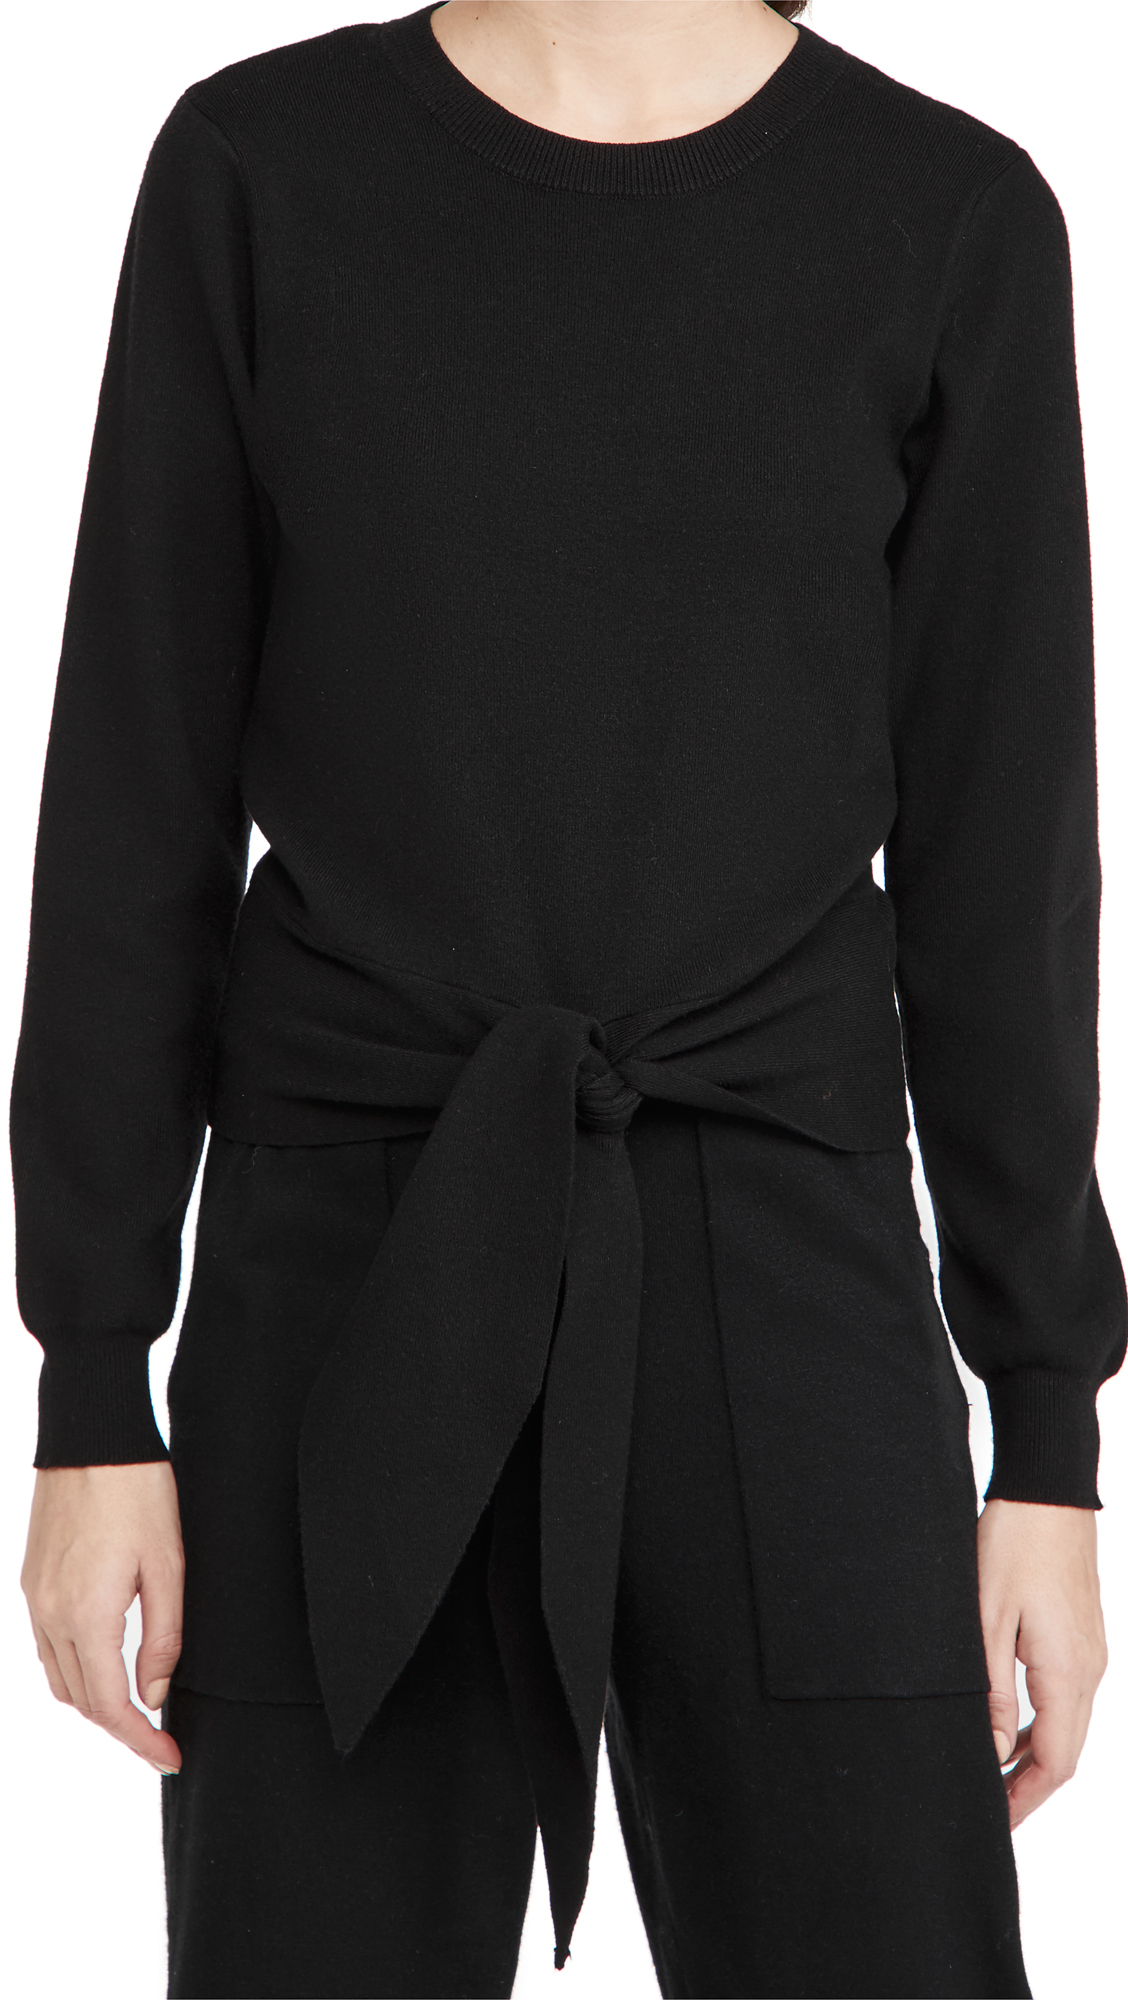 WAYF Milo Knot Front Sweater